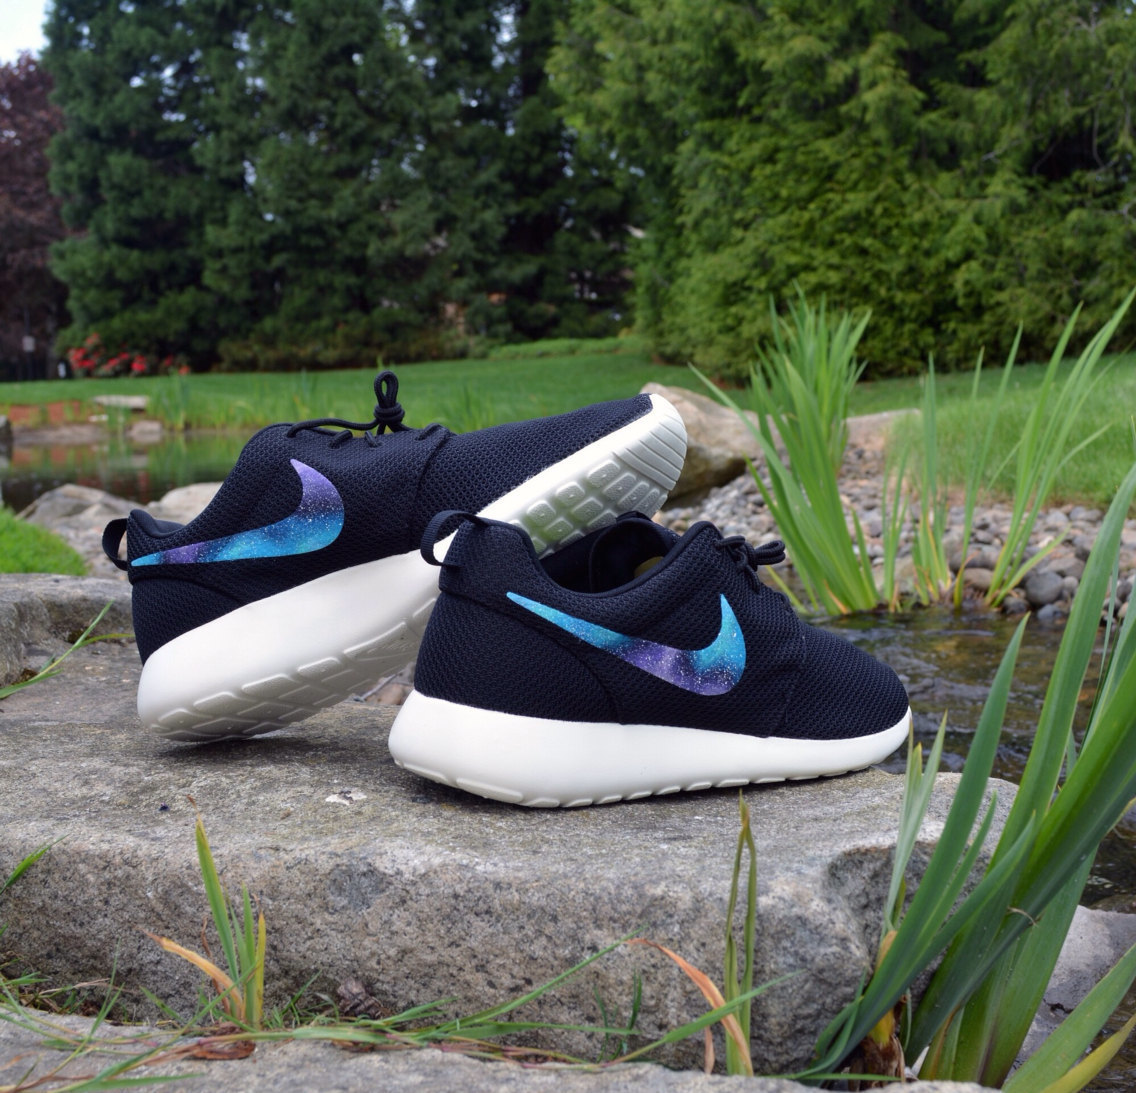 3 day sale!!! custom outer space galaxy nike roshe run !